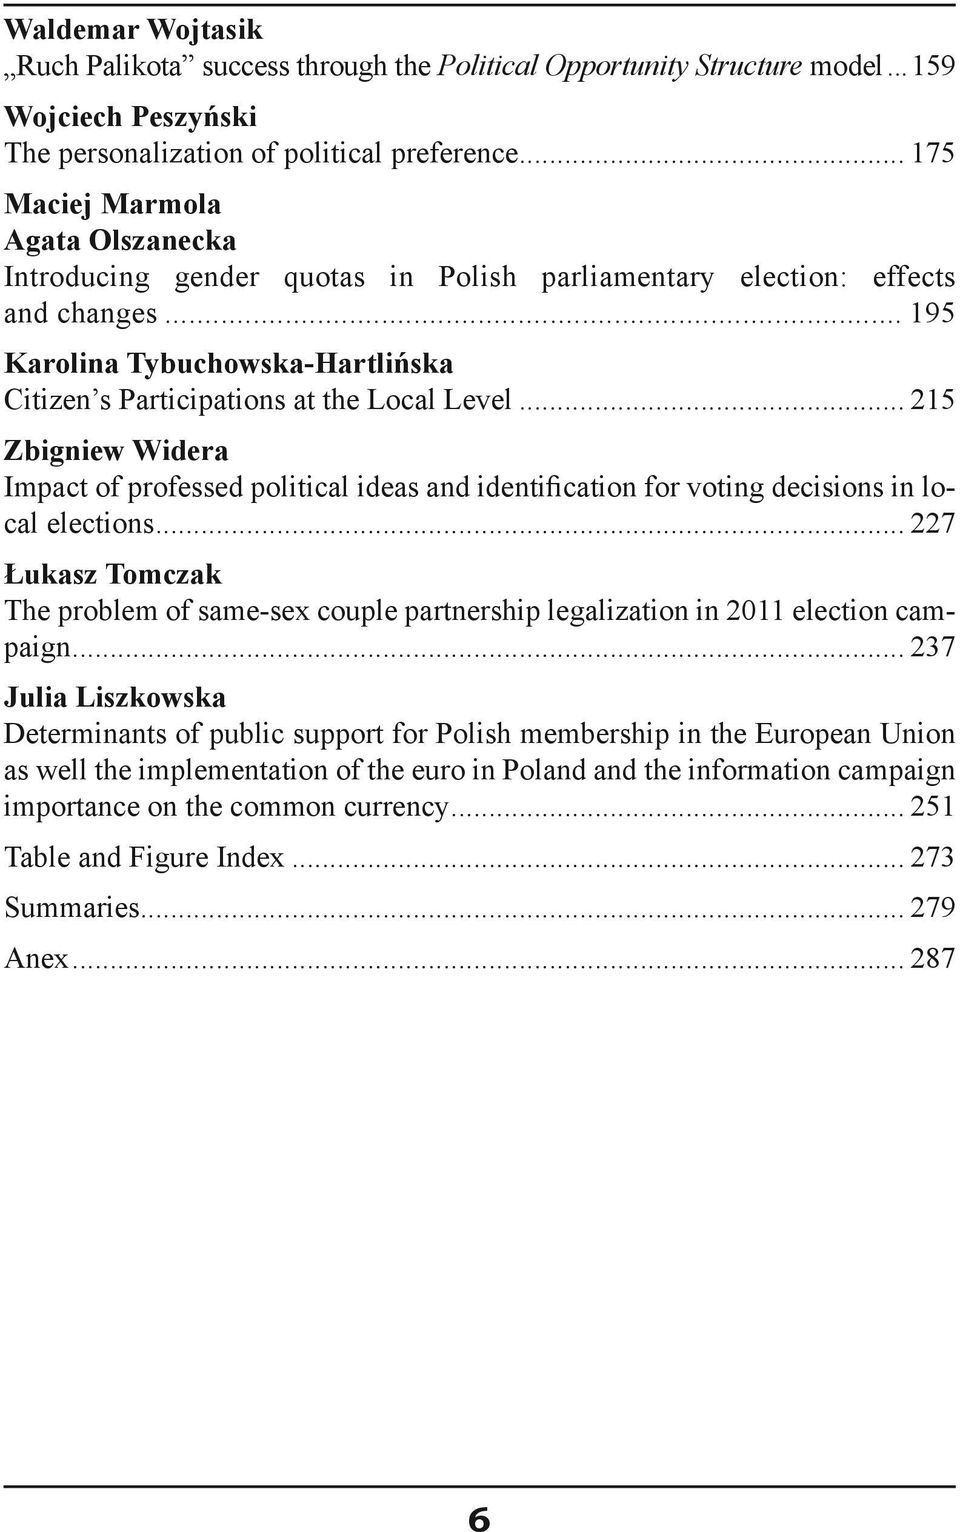 .. 215 Zbigniew Widera Impact of professed political ideas and identification for voting decisions in local elections.